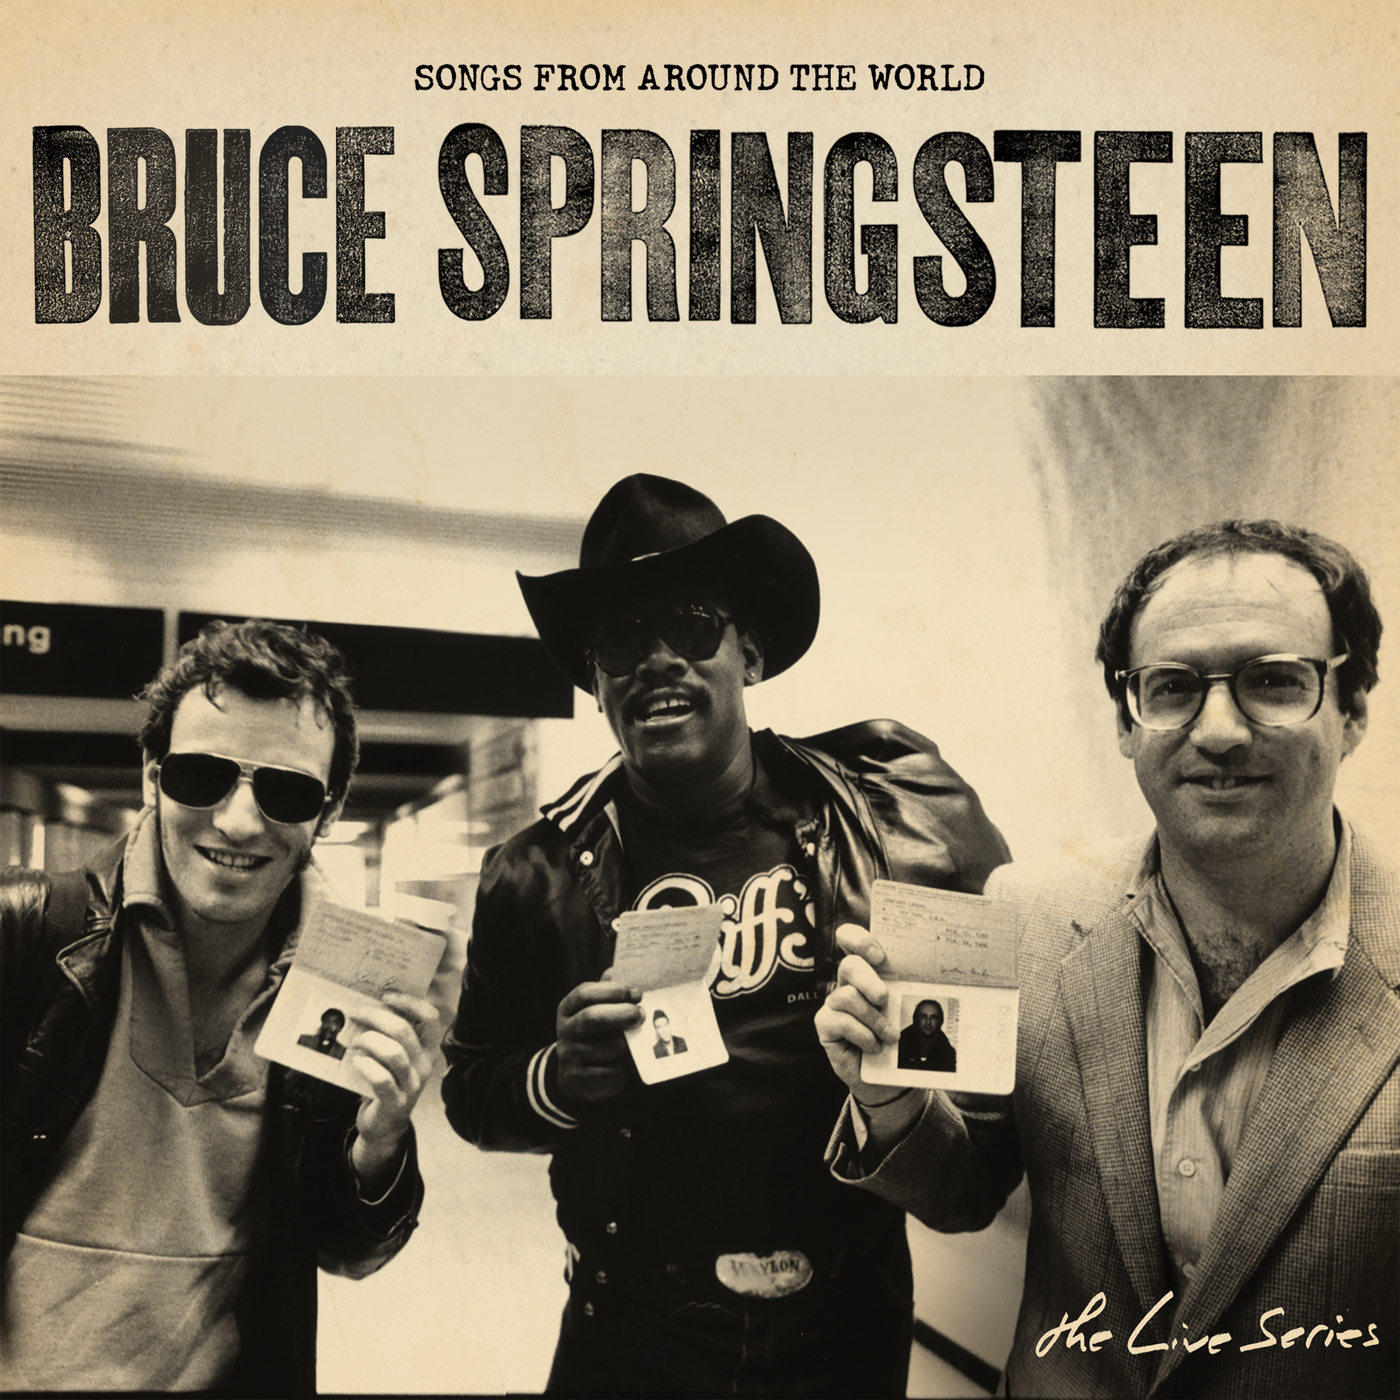 The Live Series: Songs from Around the World - Bruce Springsteen